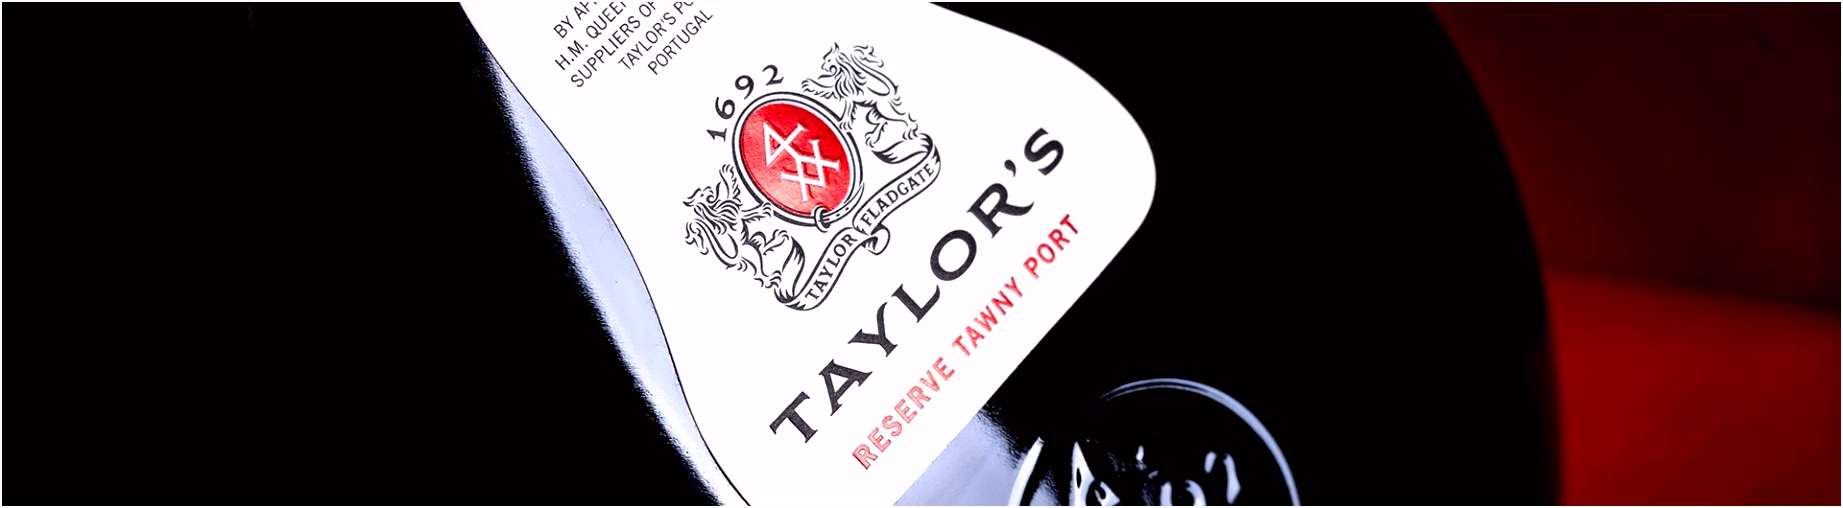 Taylor s Port Since 1692 making the finest Port wine